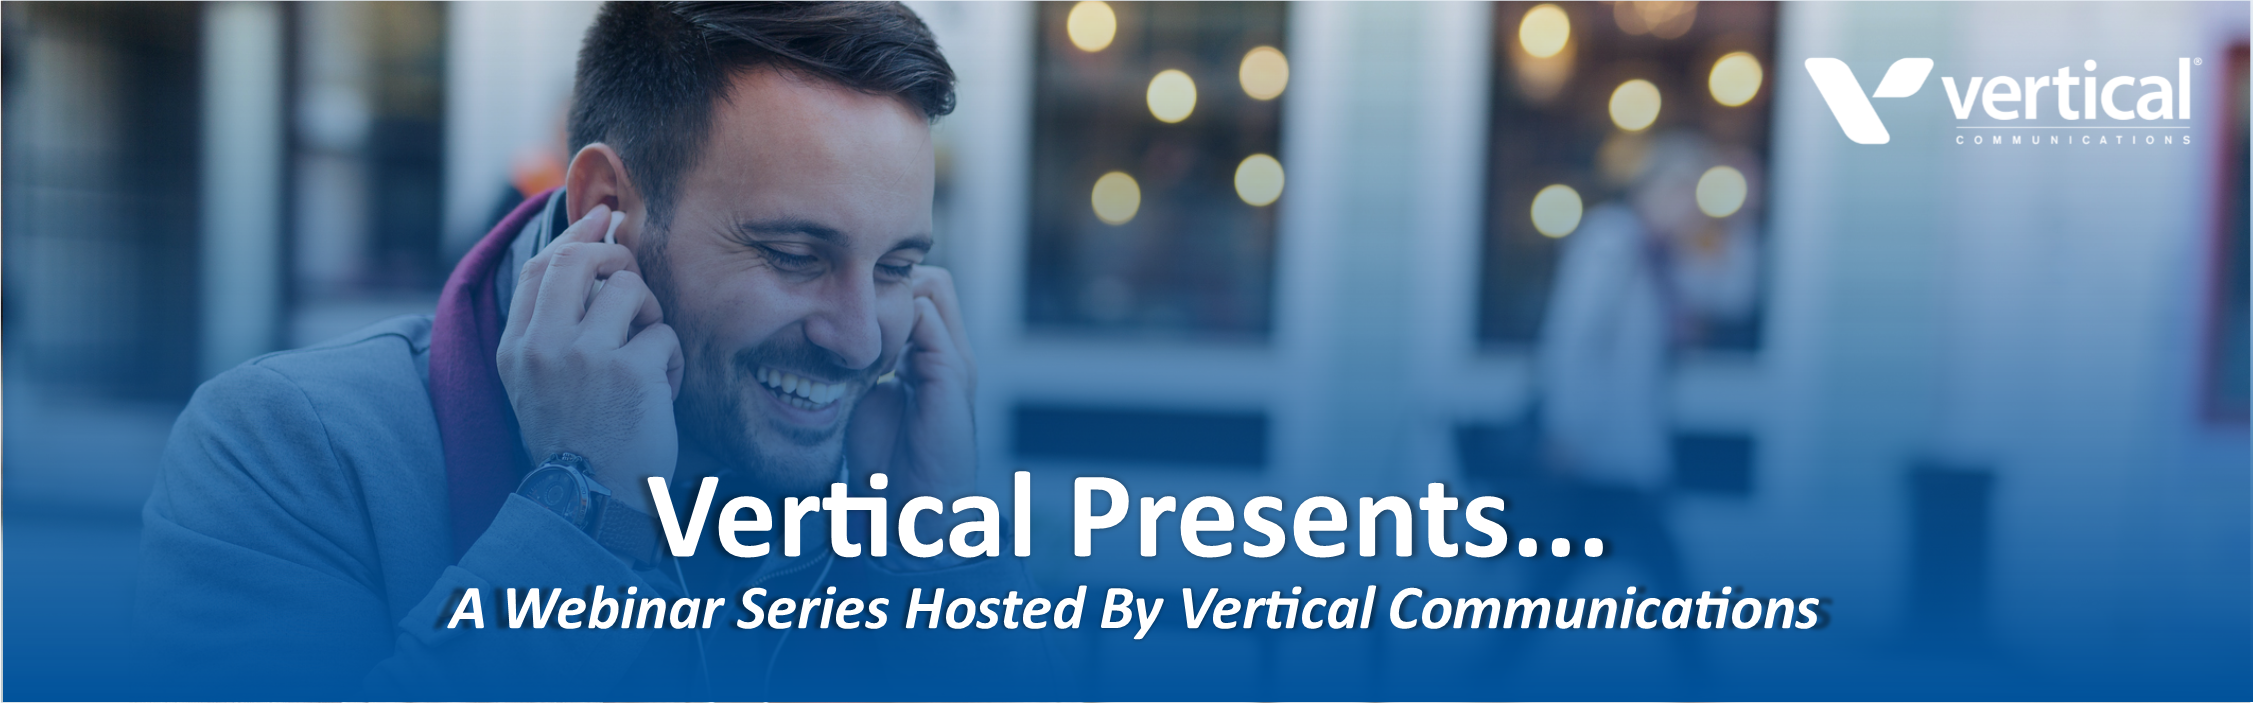 Vertical Presents - a Webinar Series Hosted By Vertical Communications